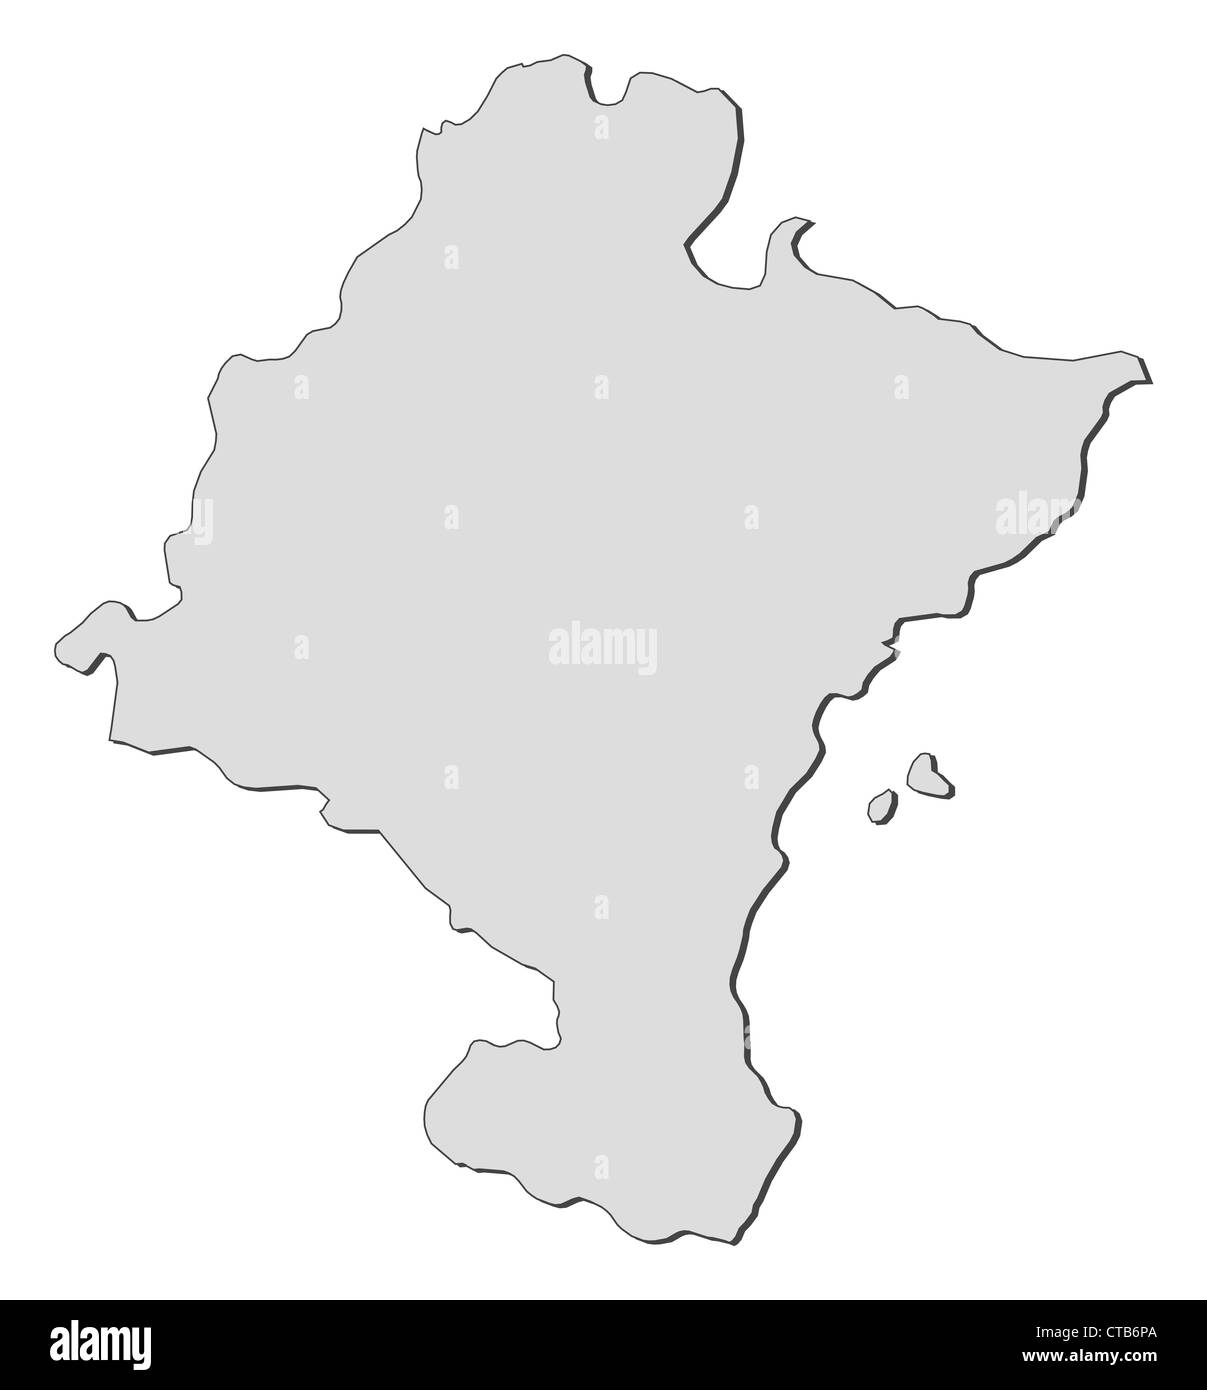 Map of Navarre, a region of Spain. - Stock Image